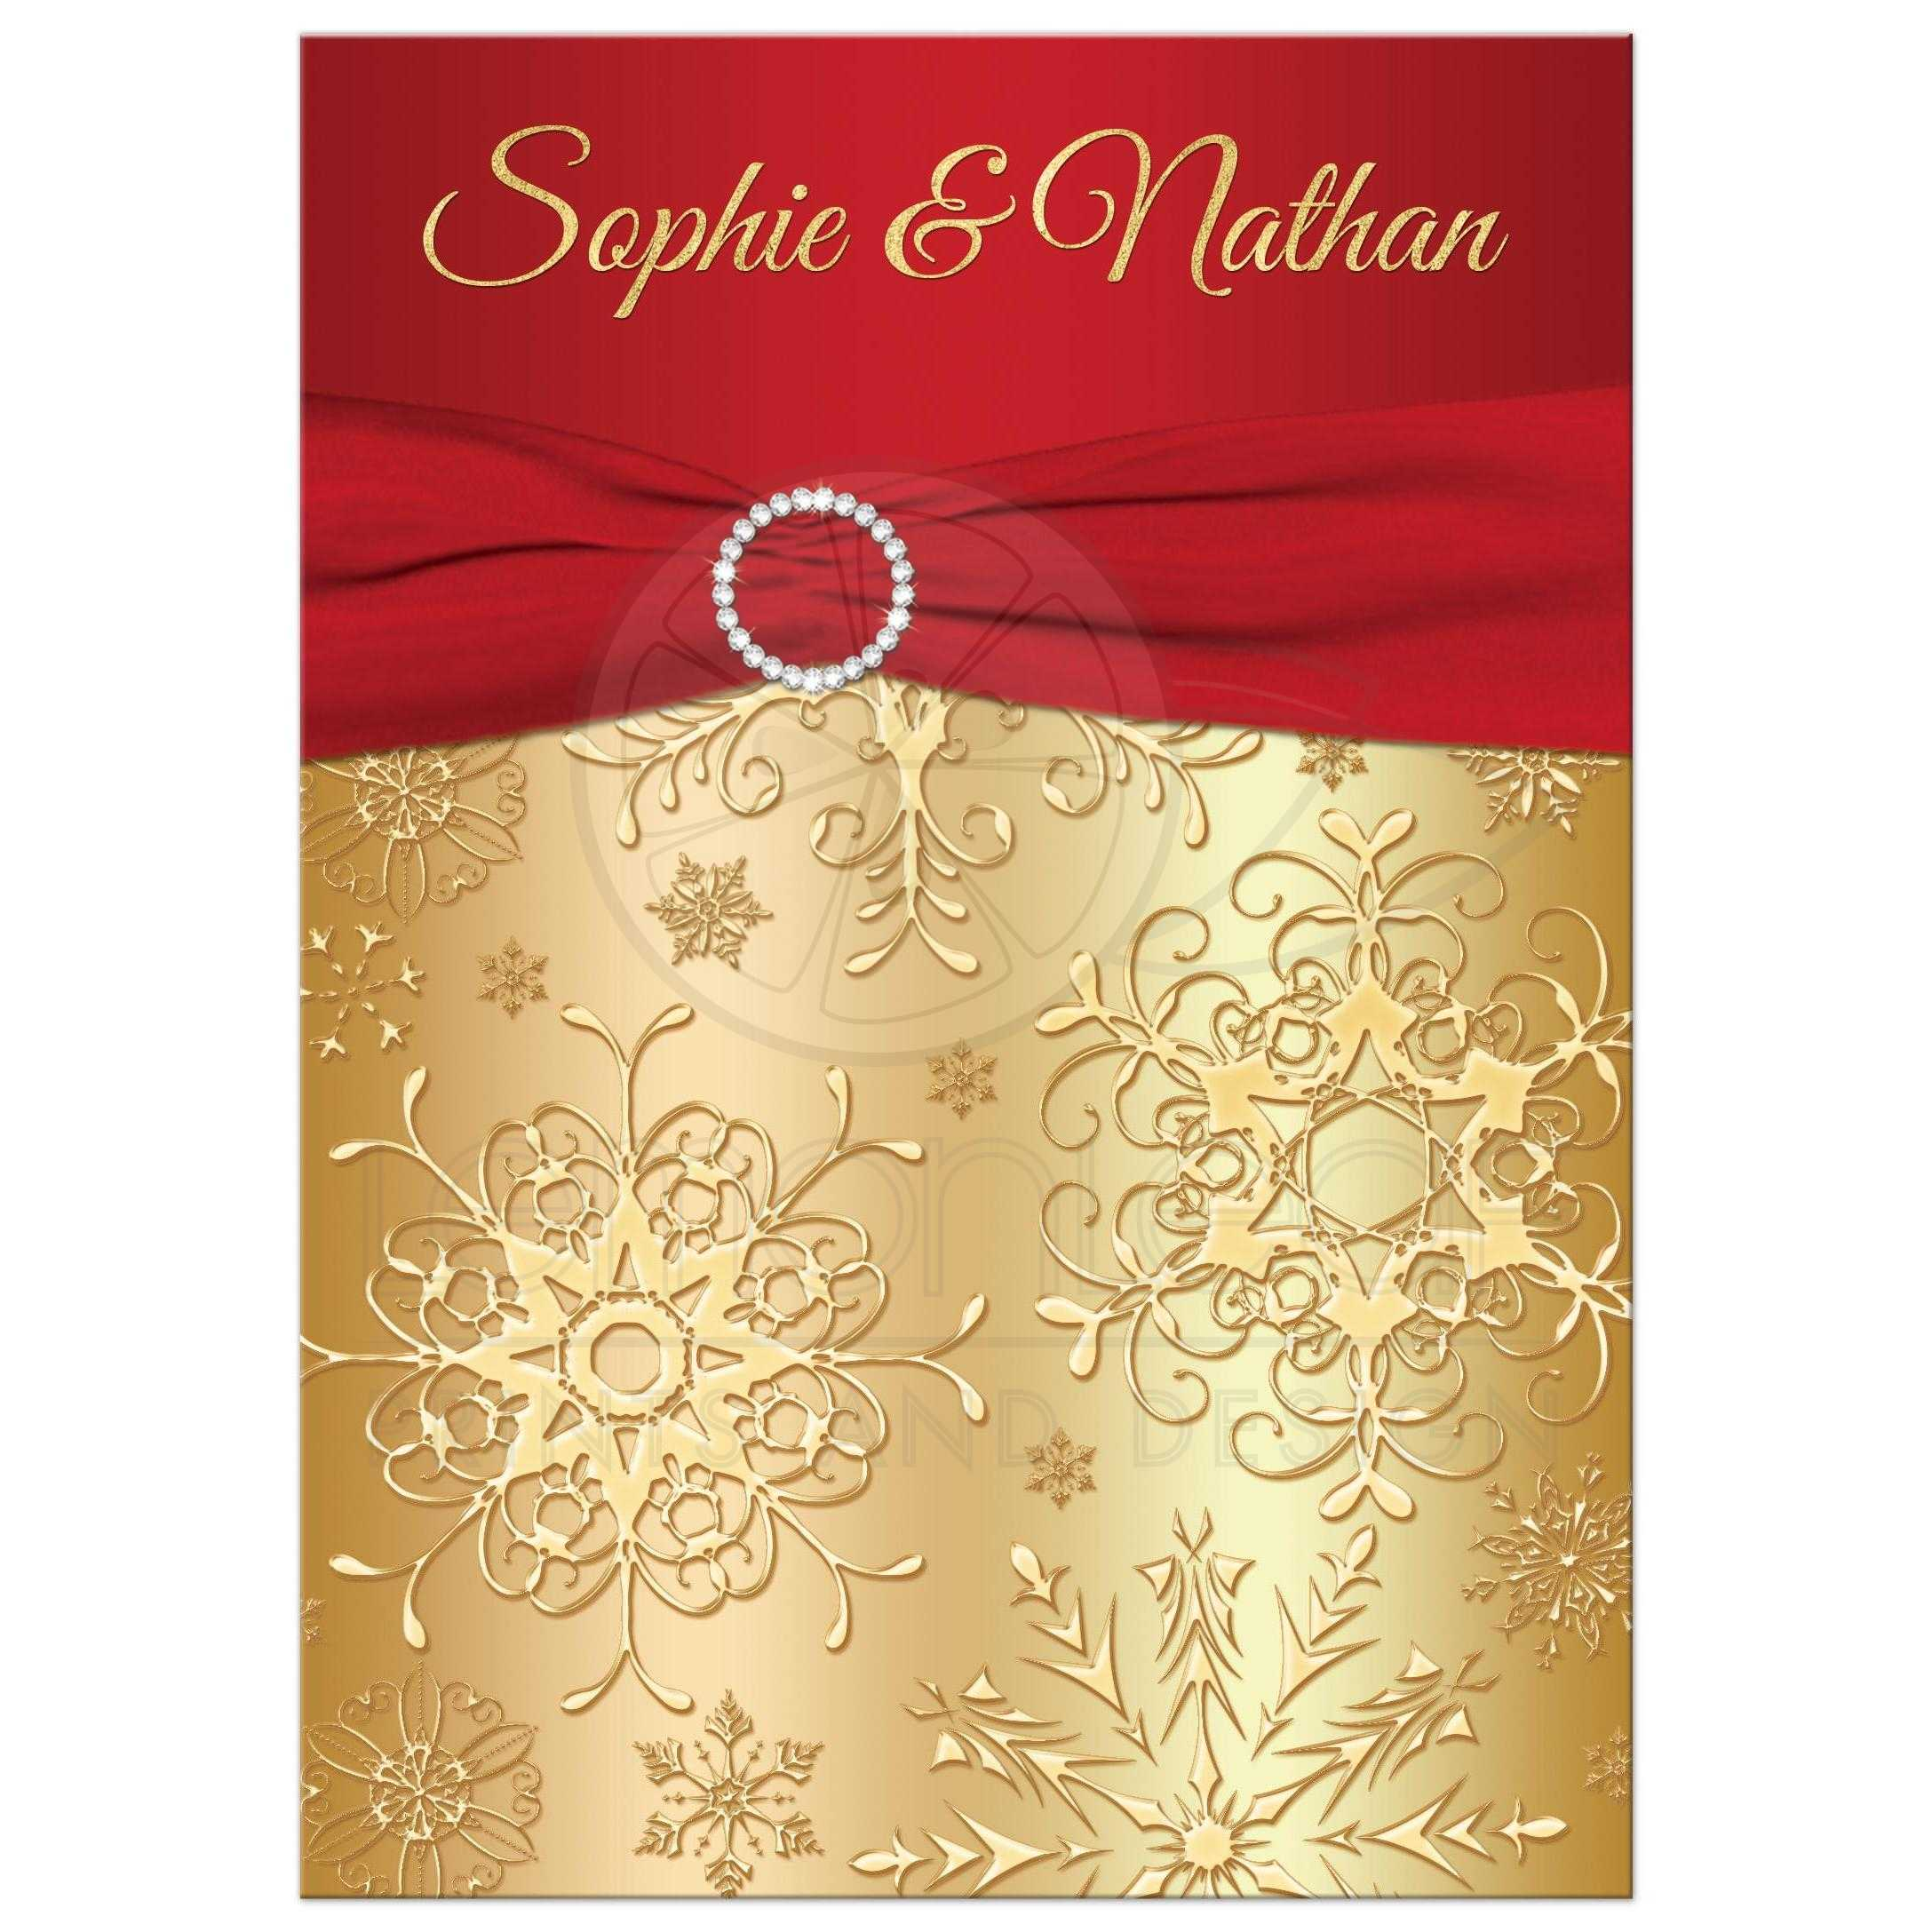 Winter wedding invitation red gold snowflakes printed ribbon great red and gold winter wedding invitation with snowflakes ribbon and jewel buckle brooch stopboris